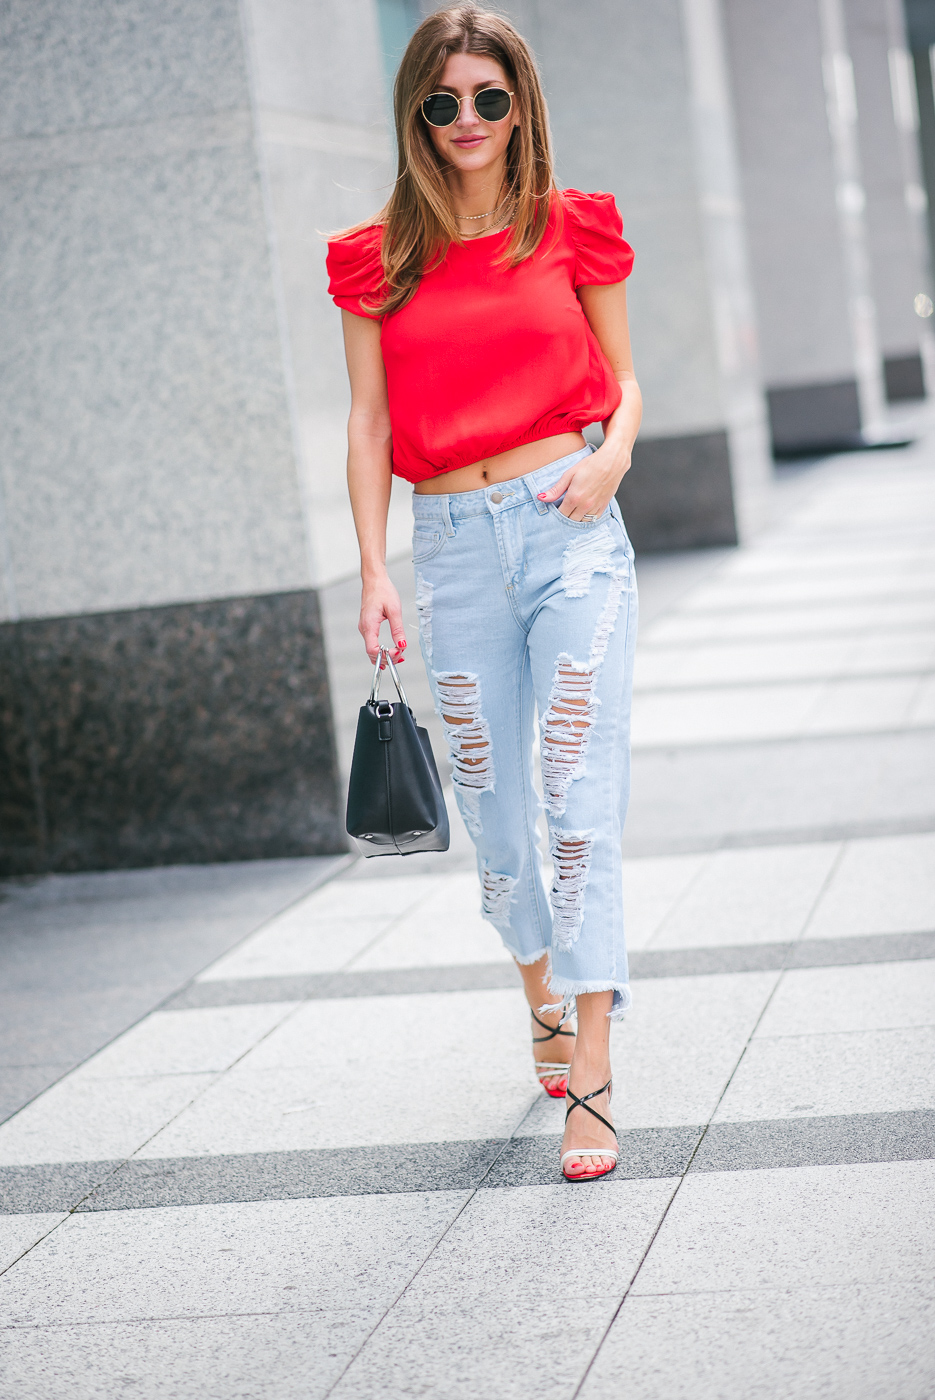 Lifestyle blogger Ashlee Frazier wearing bright red top